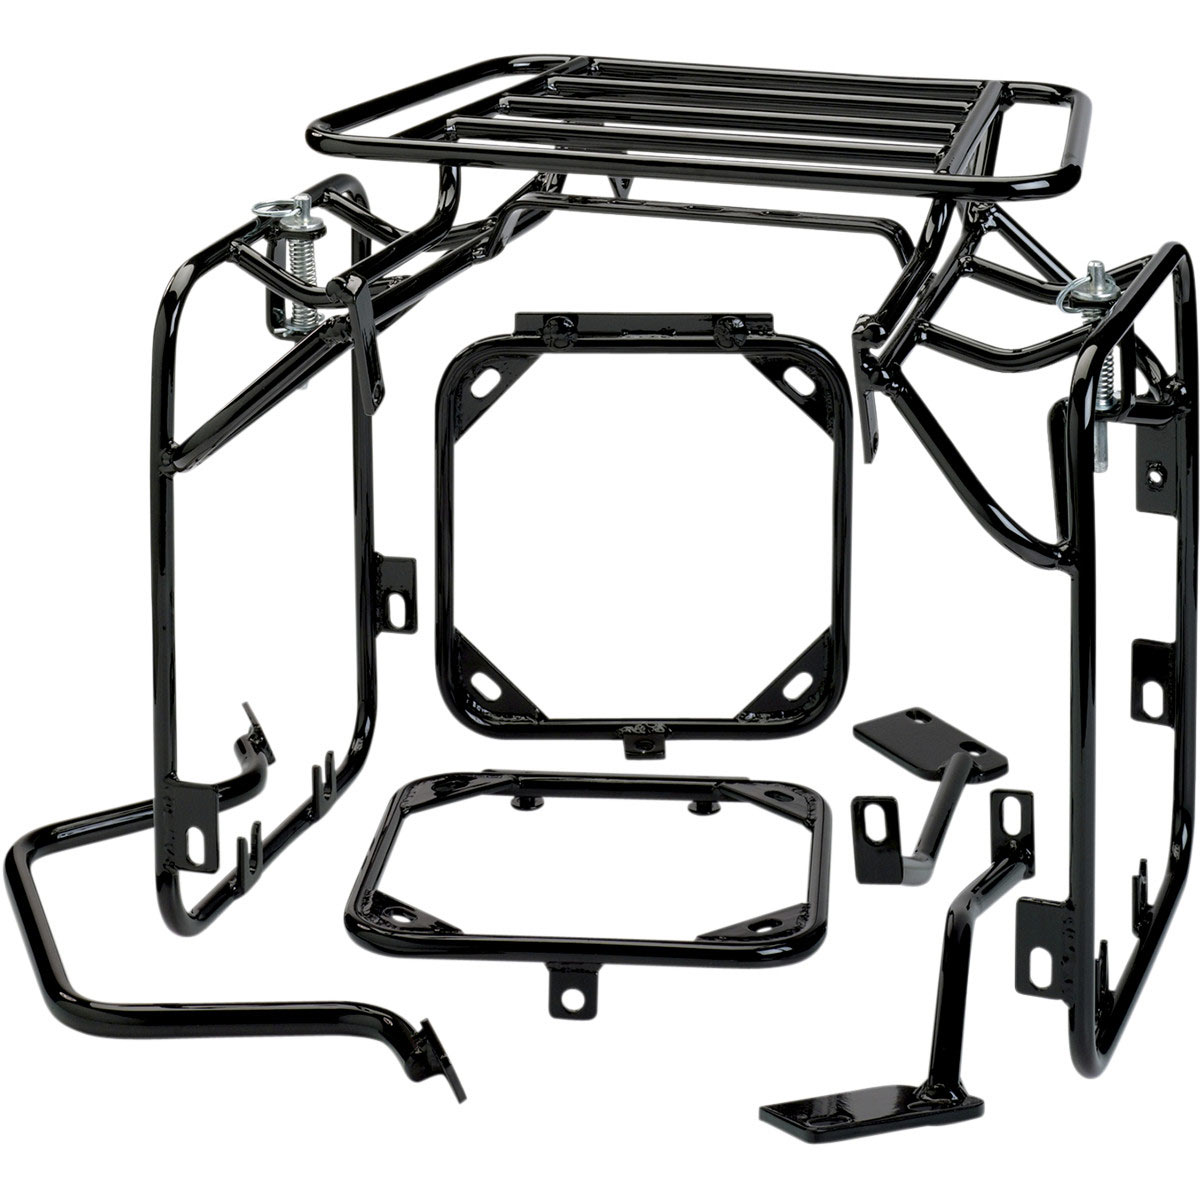 Moose Expedition Luggage Rack System For Dr650se 96 15